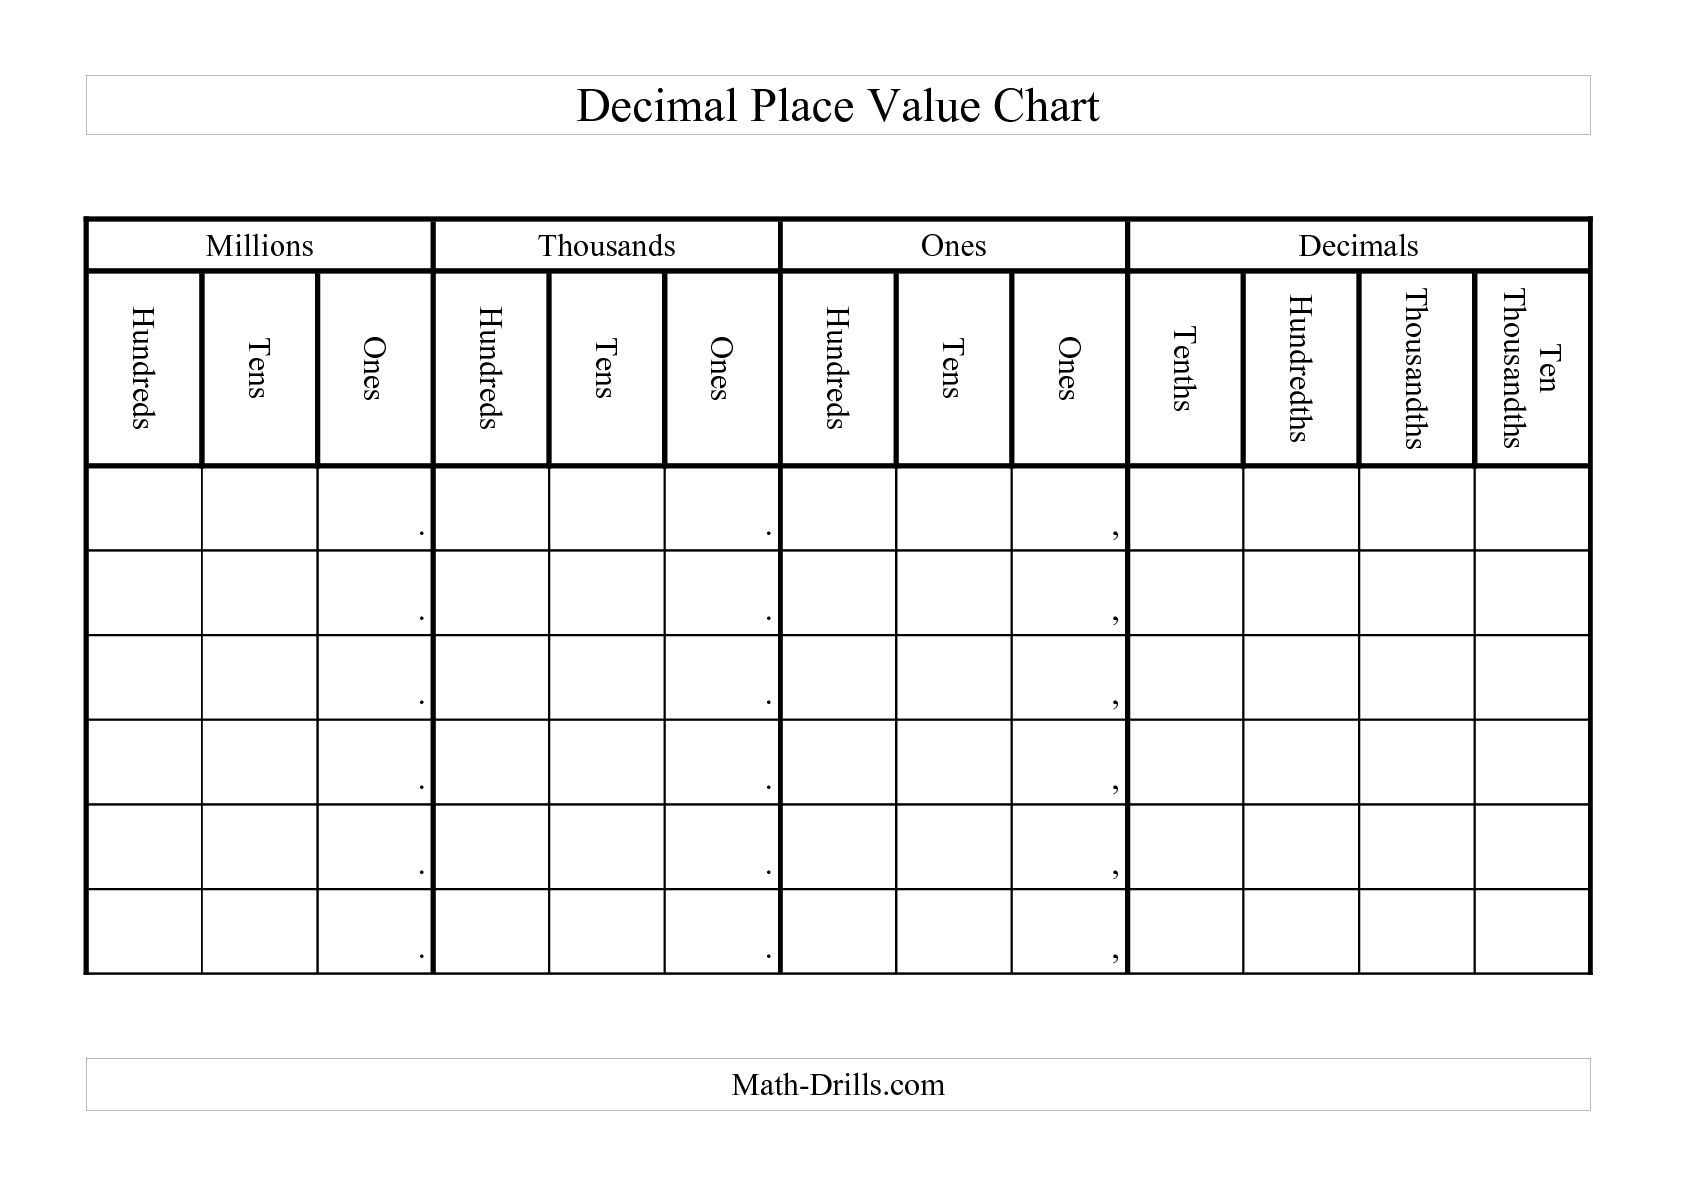 graphic regarding Decimal Place Value Charts Printable identified as Pin upon Math